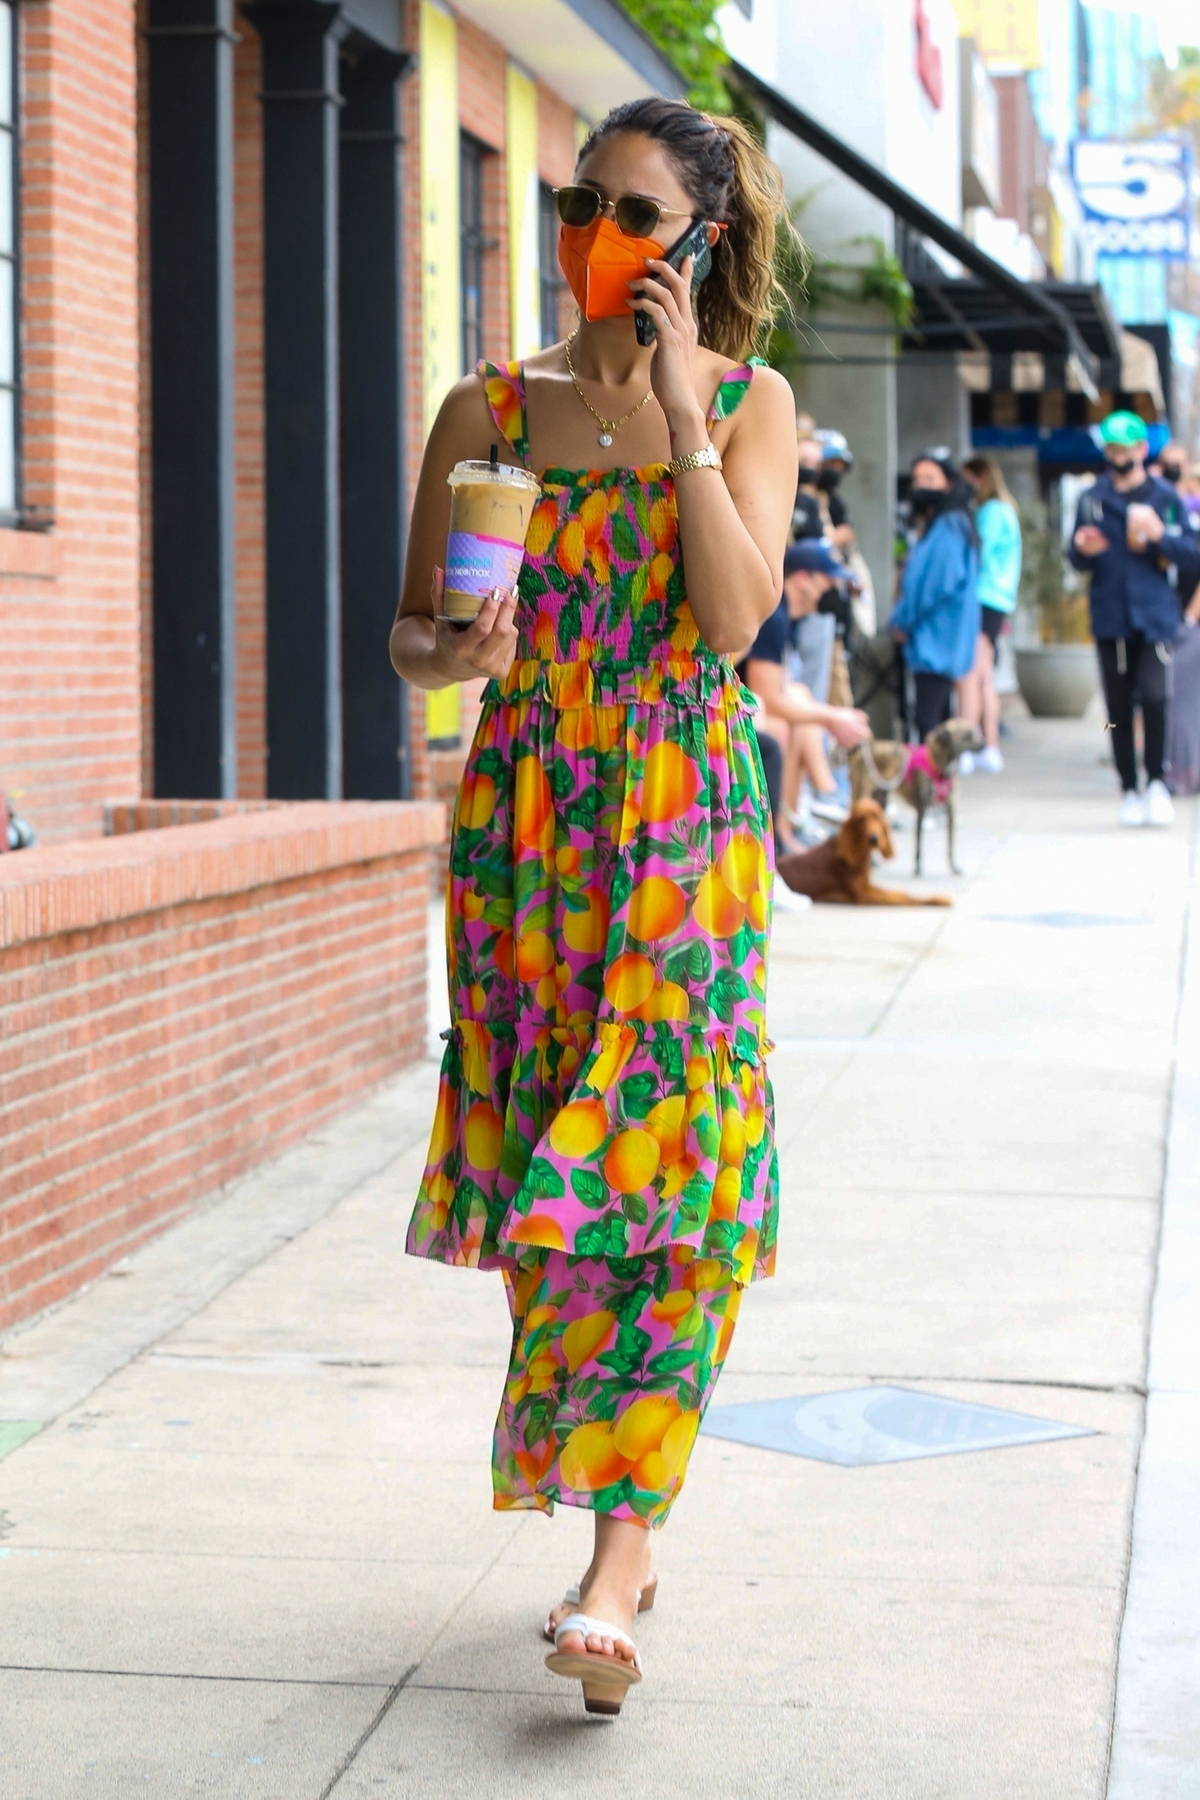 Eiza Gonzalez looks pretty in a colorful floral dress during her morning coffee run in West Hollywood, California